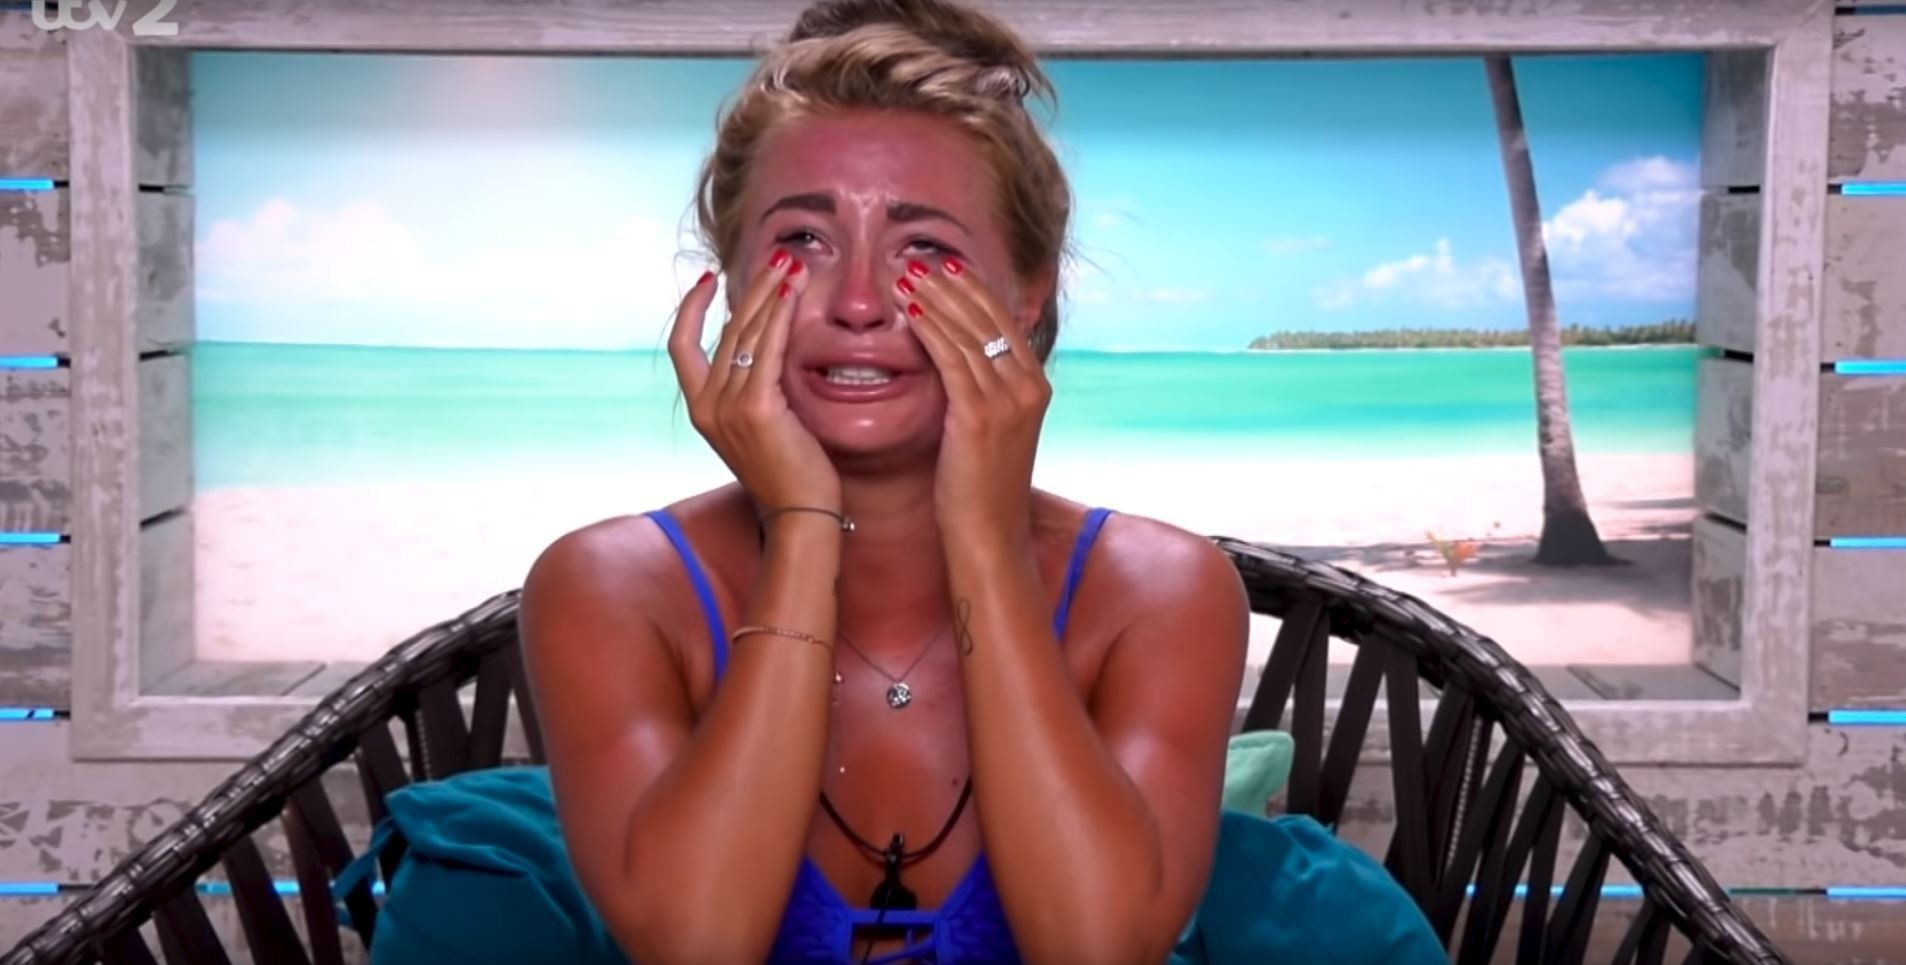 15 Stages Of Emotion We Will All Feel As 'Love Island' Comes To An End